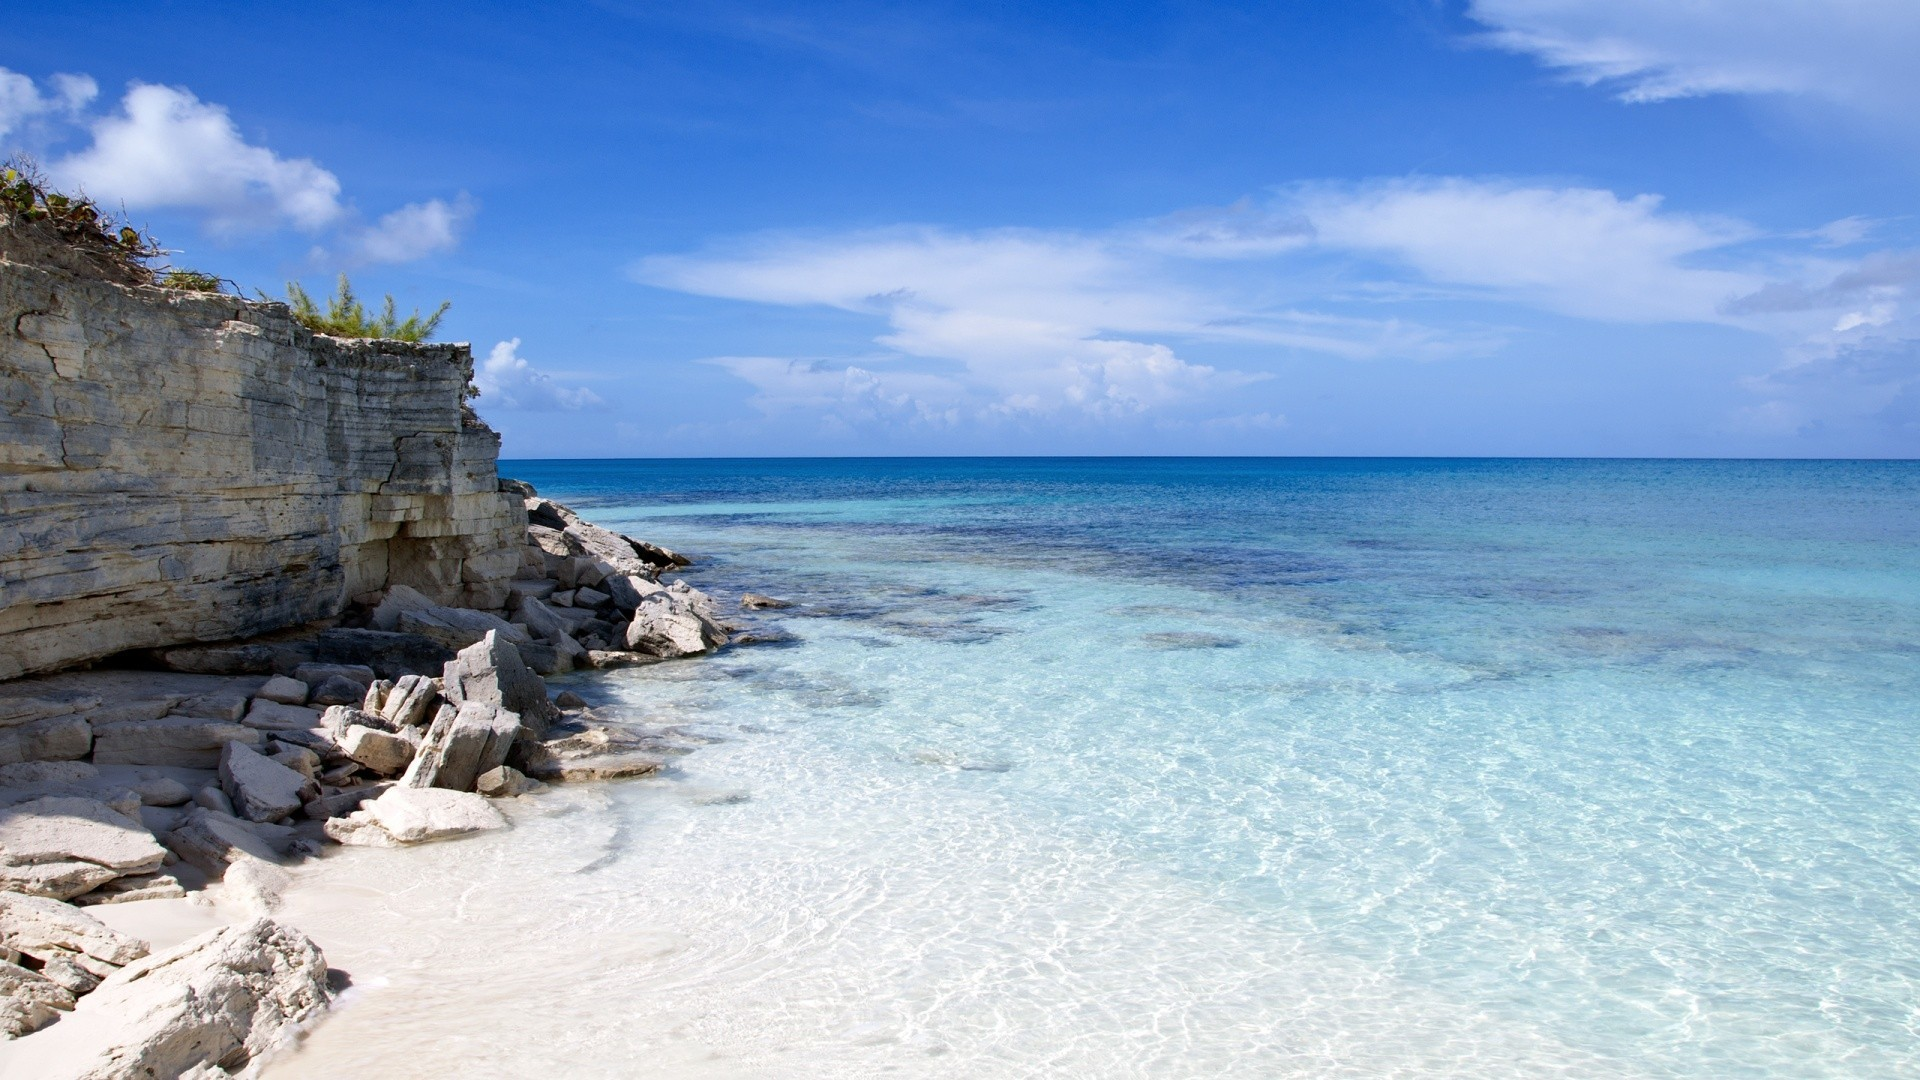 Res: 1920x1080, Lagoons Nature Beautiful Rocky Blue Lagoon Beaches Oceans Sea Ocean  Wallpaper For Iphone 6 -